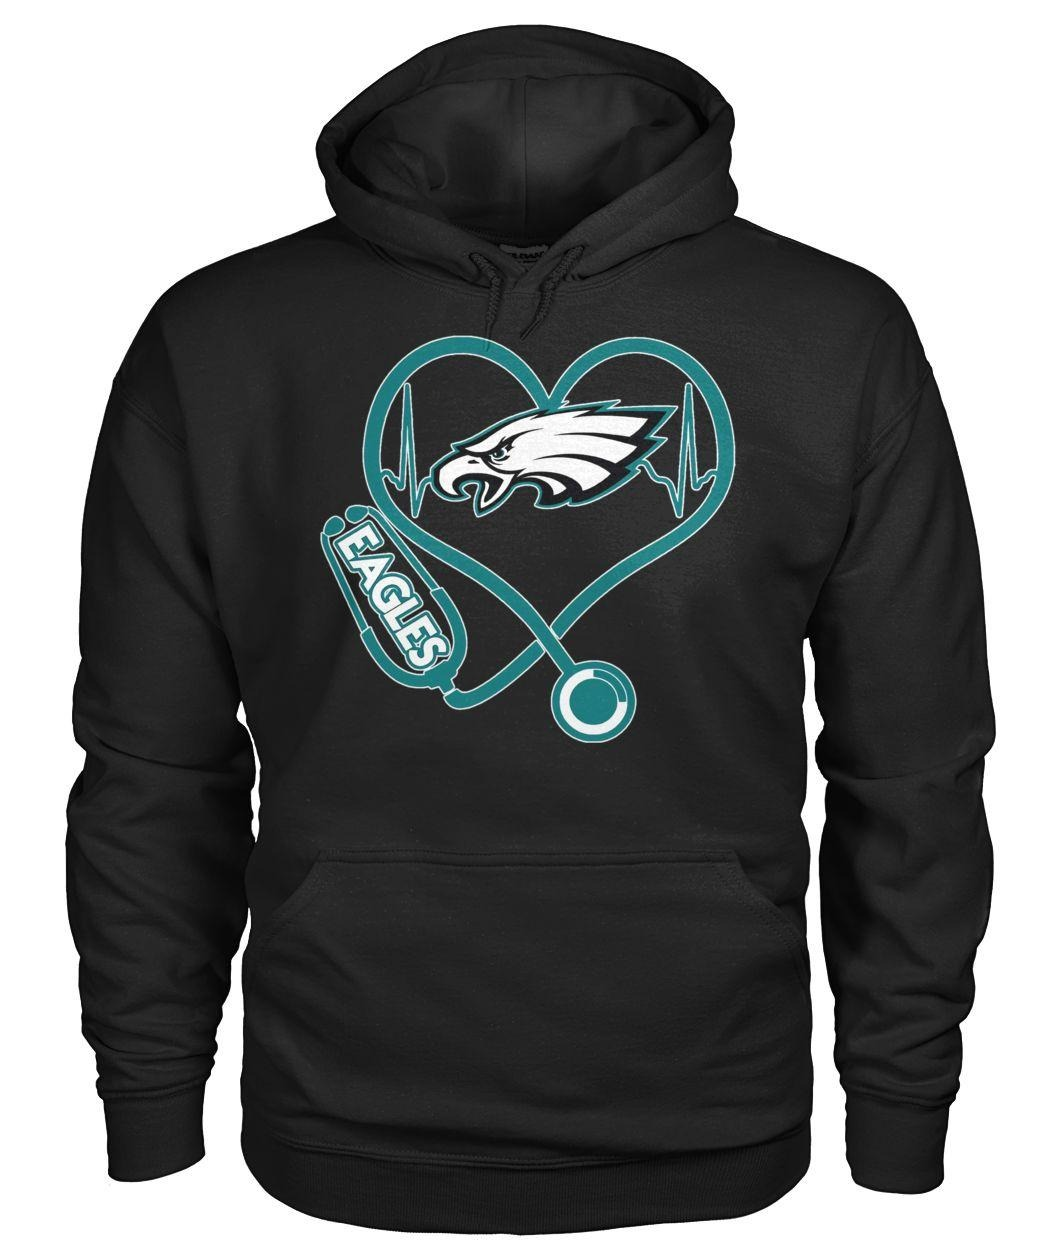 Nurse heartbeat Philadelphia Eagles Hoodie